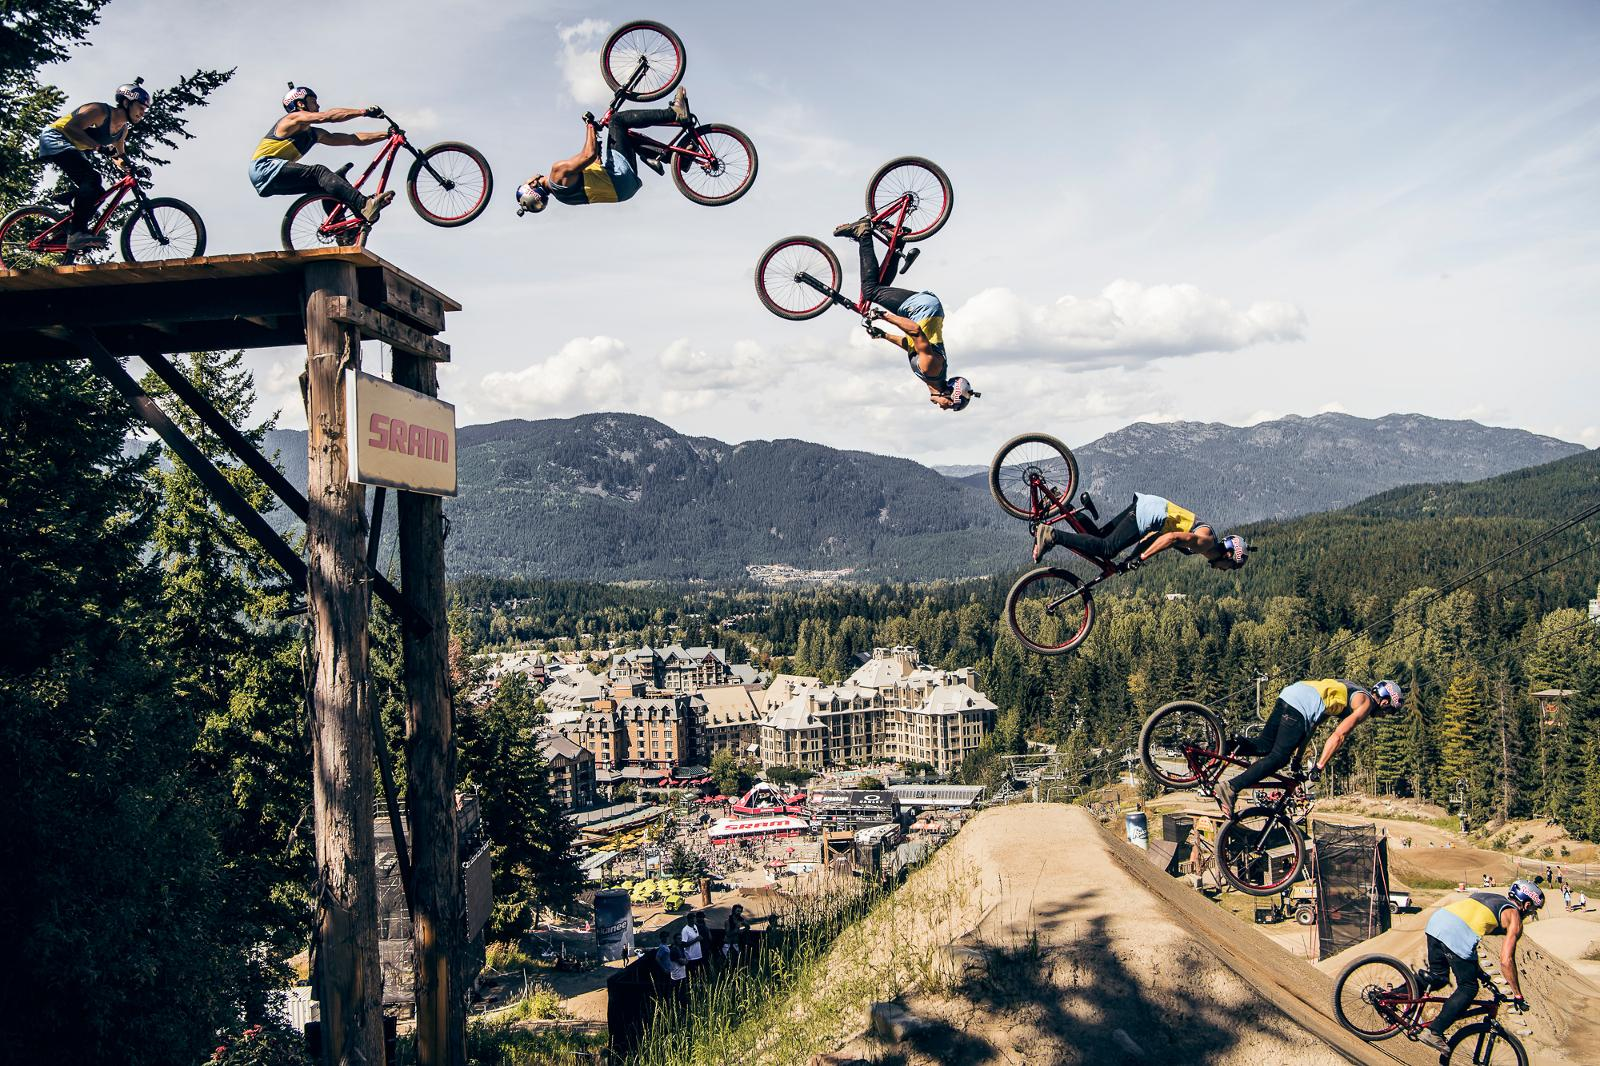 power-of-mind_whistler_fot-bartek-wolinski-red-bull-content-pool_024